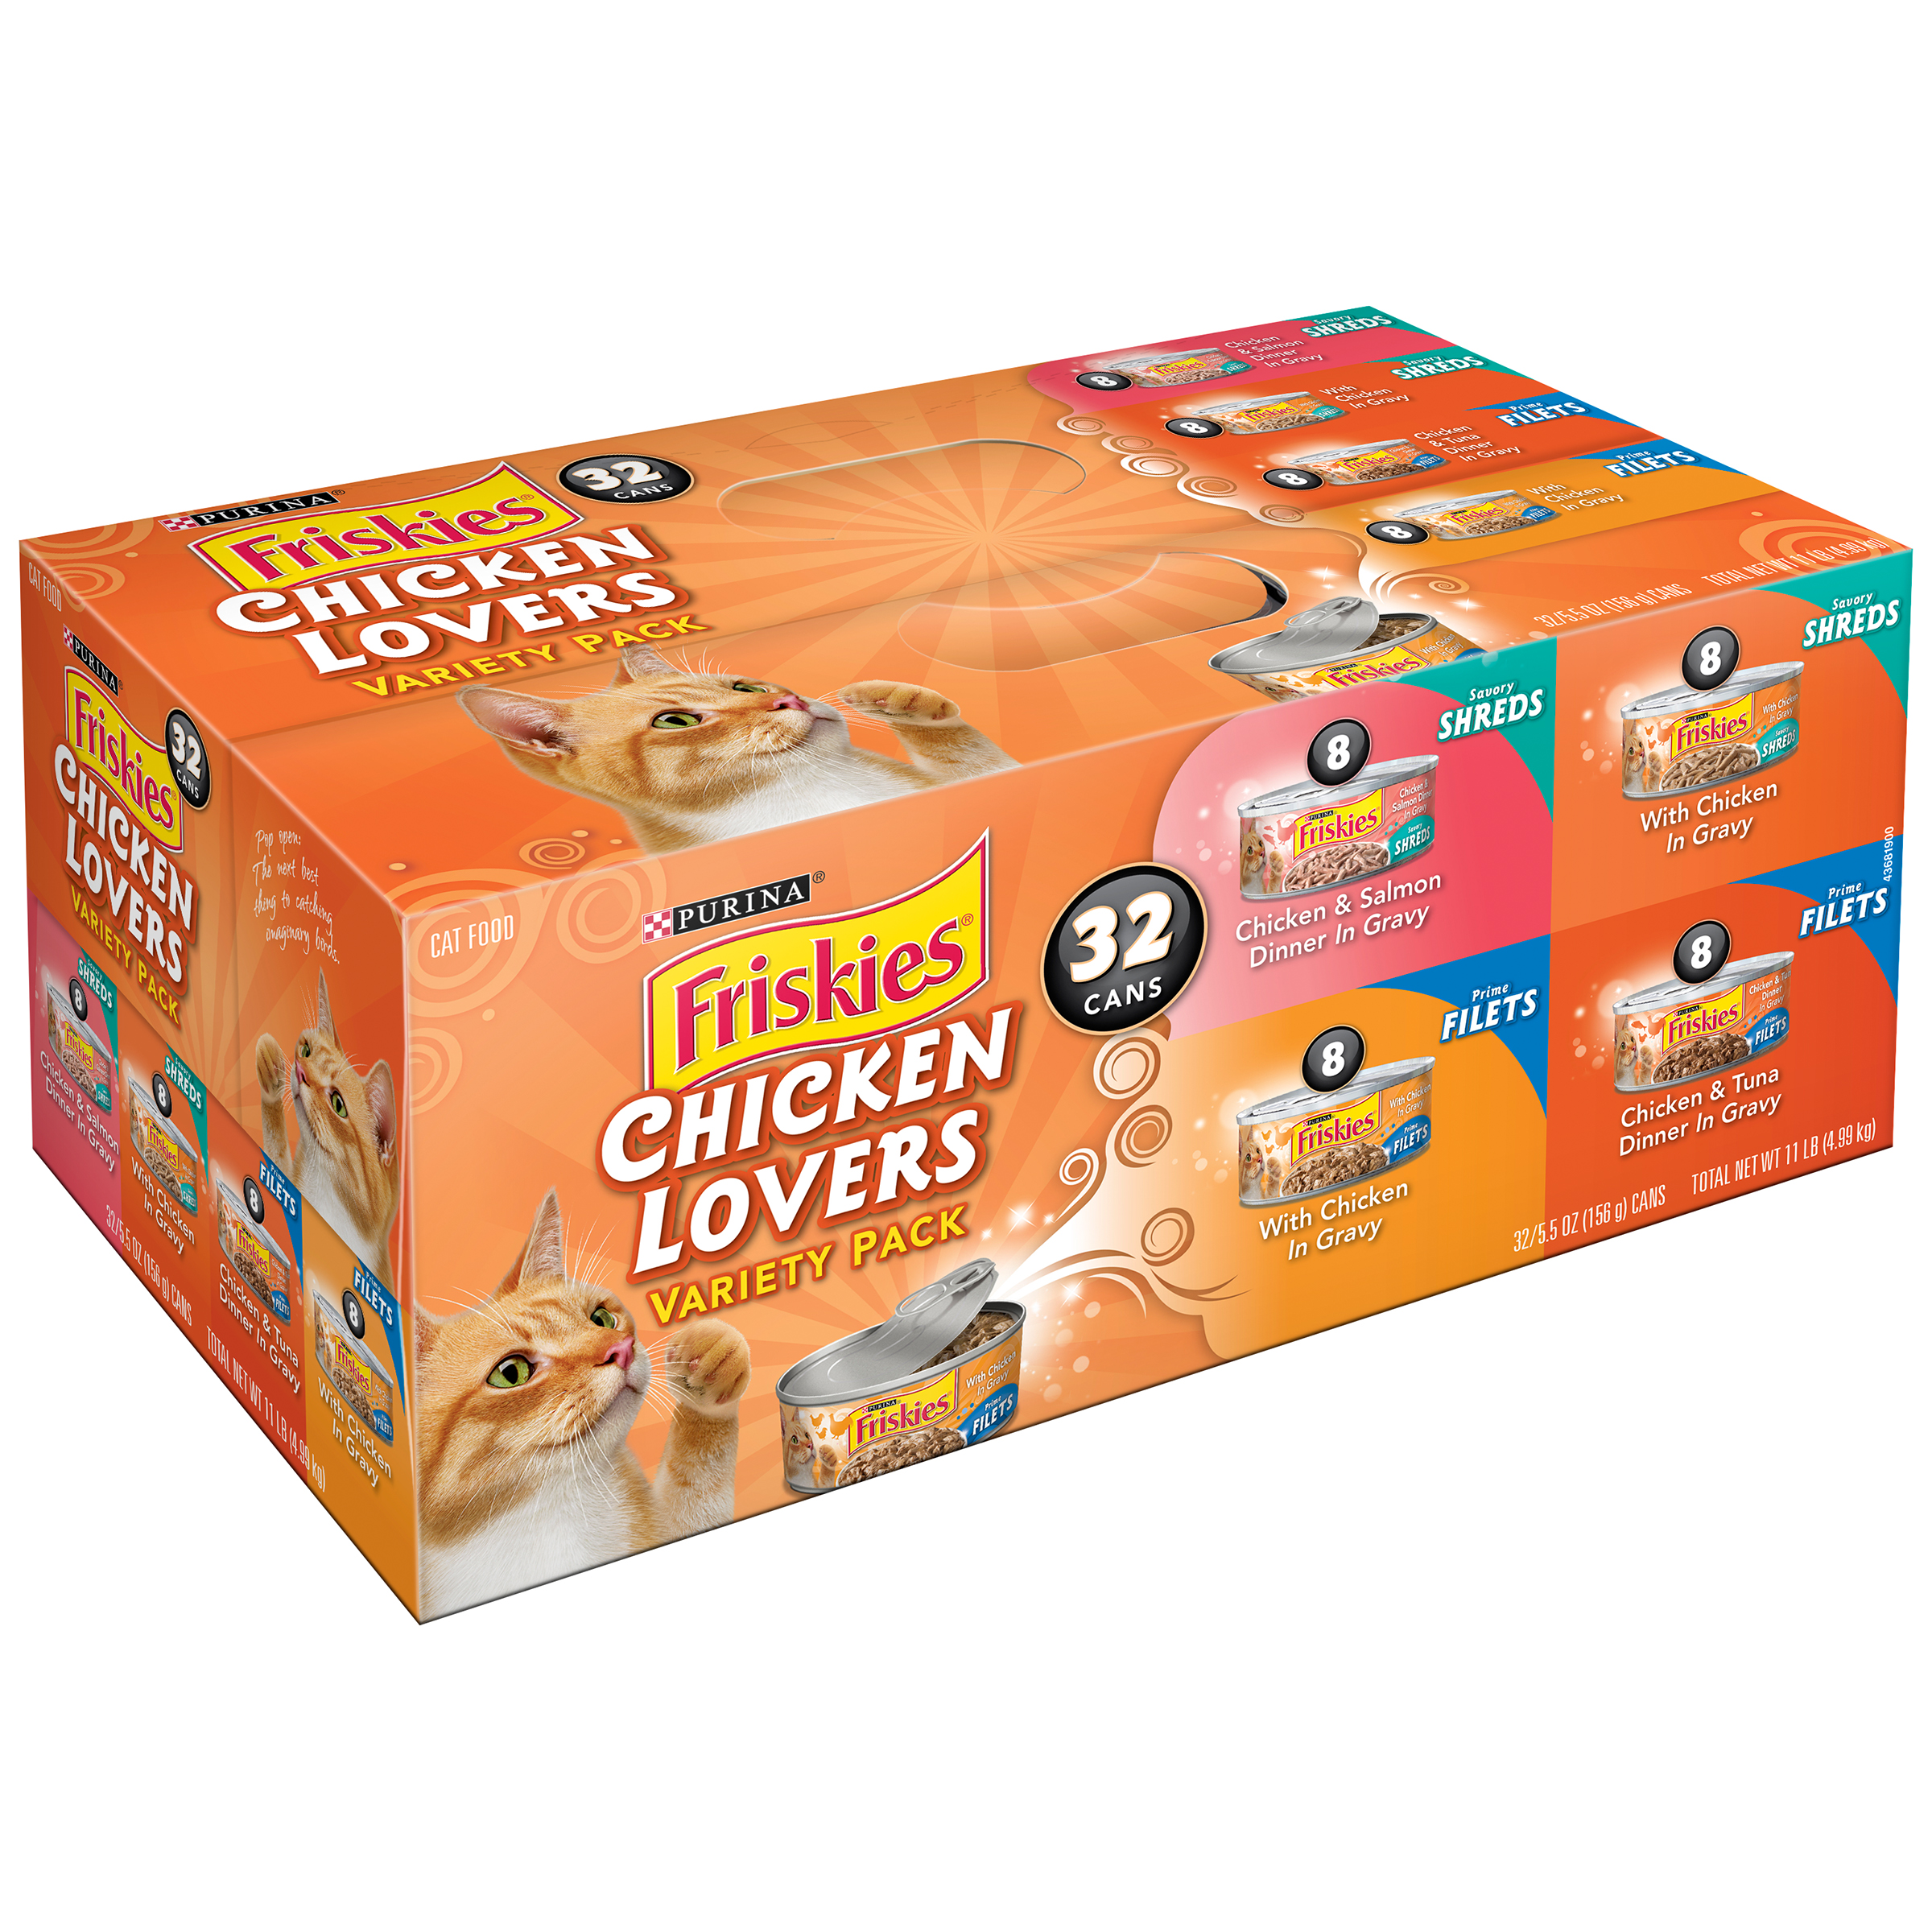 Purina Friskies Chicken Lovers Cat Food Variety Pack 32-5.5 oz. Cans